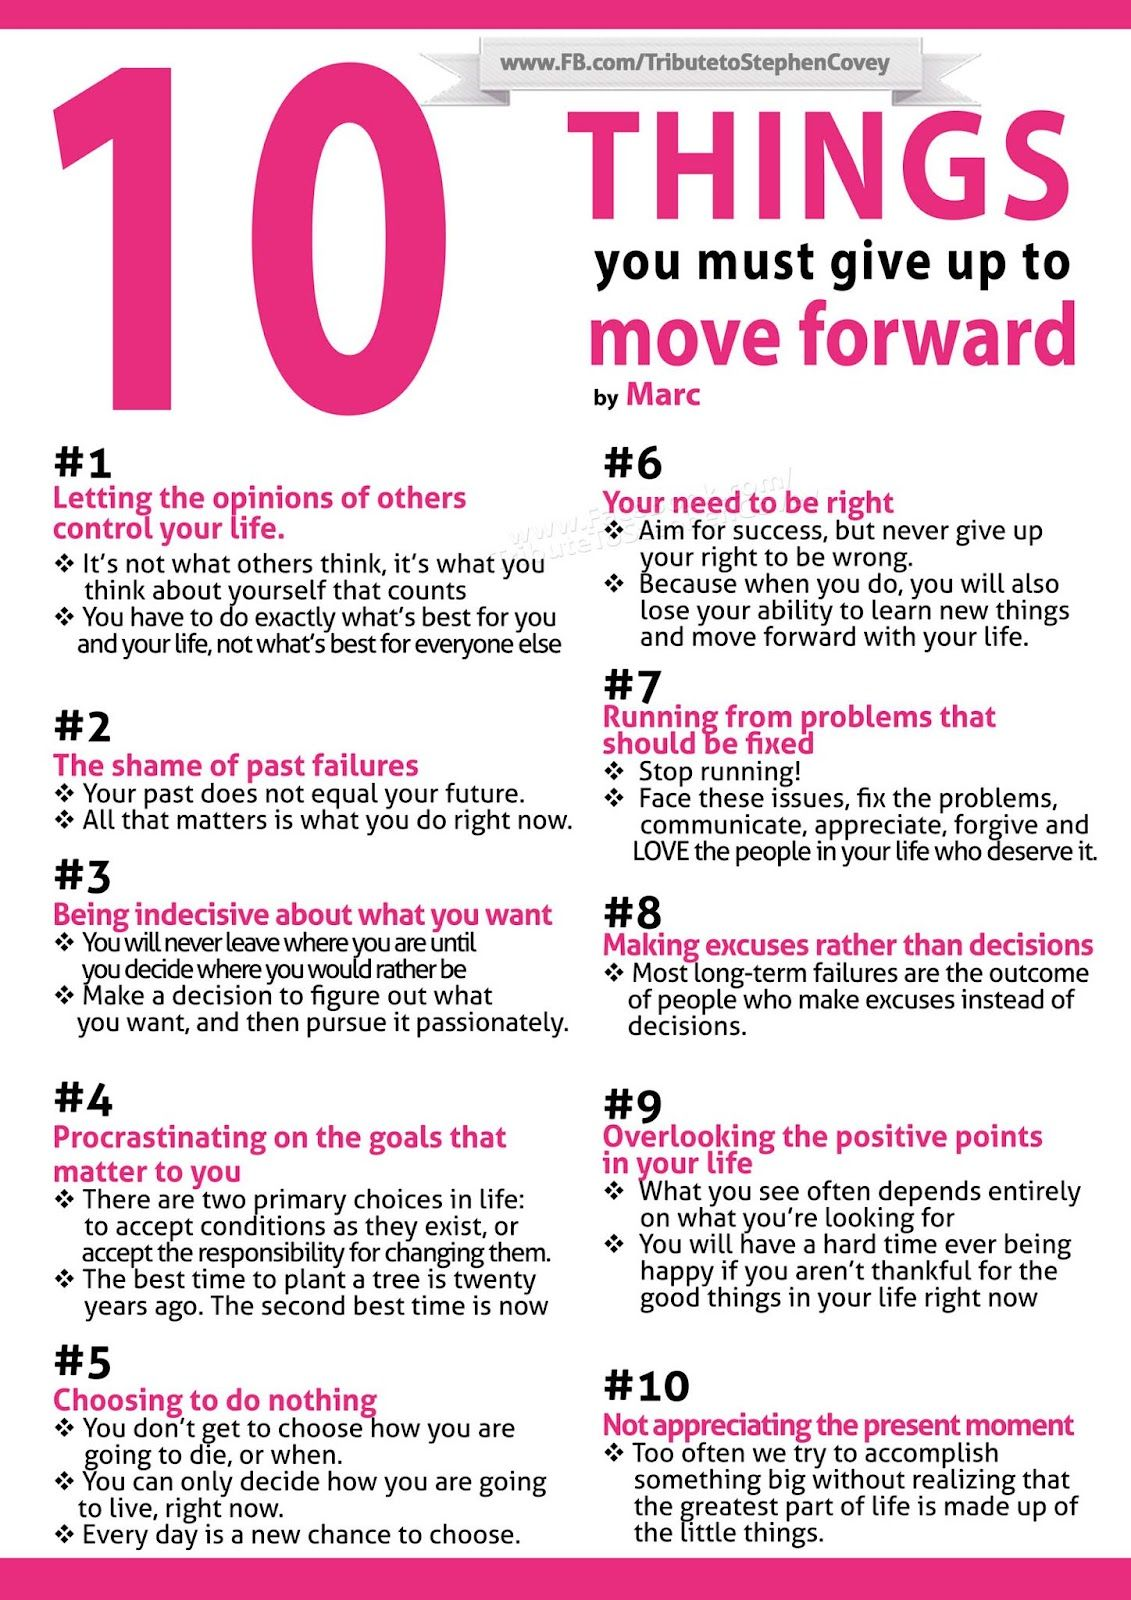 best images about stephen covey stephen r covey 17 best images about stephen covey stephen r covey stephen covey 7 habits and vietnam